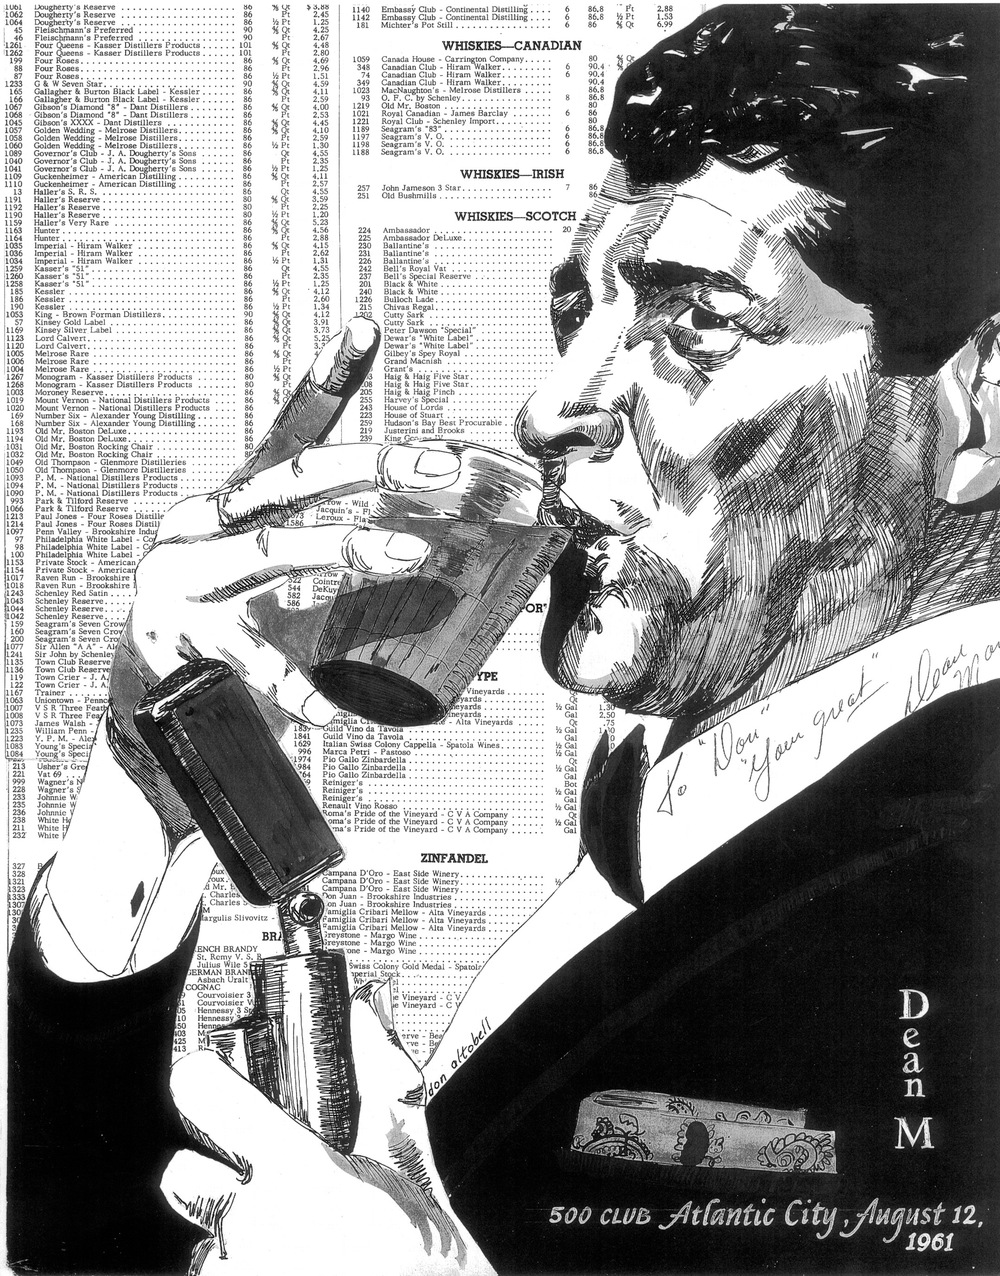 Dean Martin by Don Altobell